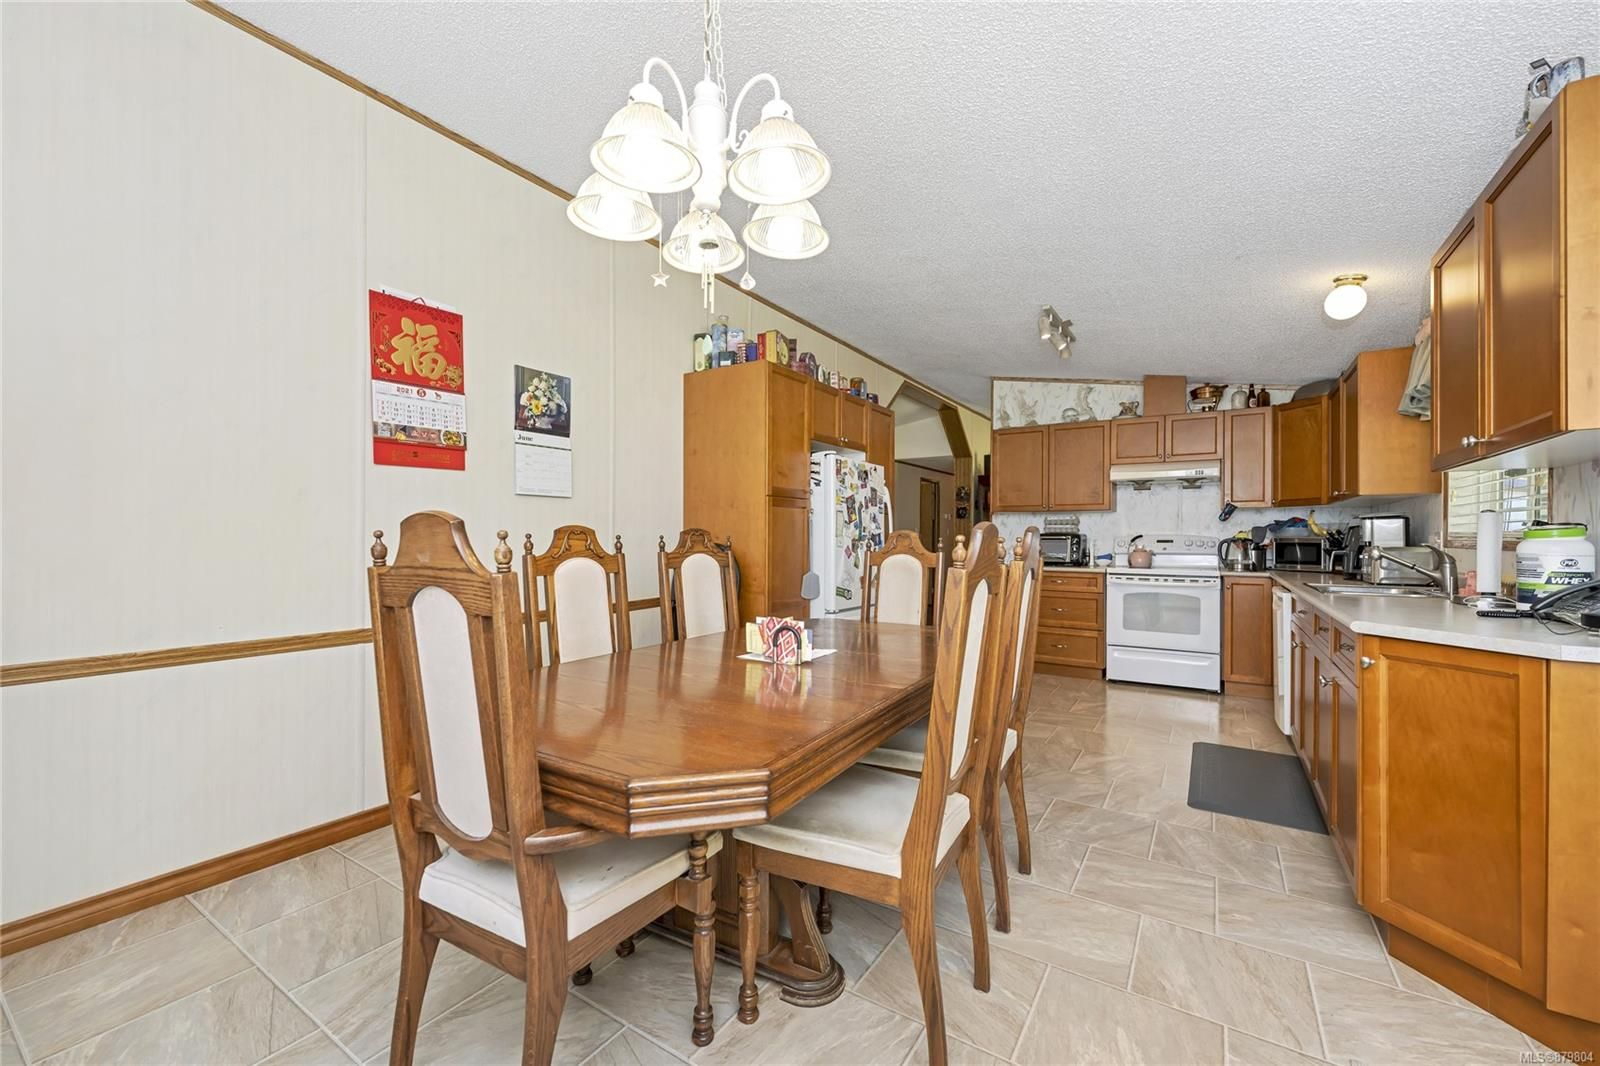 Photo 19: Photos: 3596 Riverside Rd in : ML Cobble Hill Manufactured Home for sale (Malahat & Area)  : MLS®# 879804